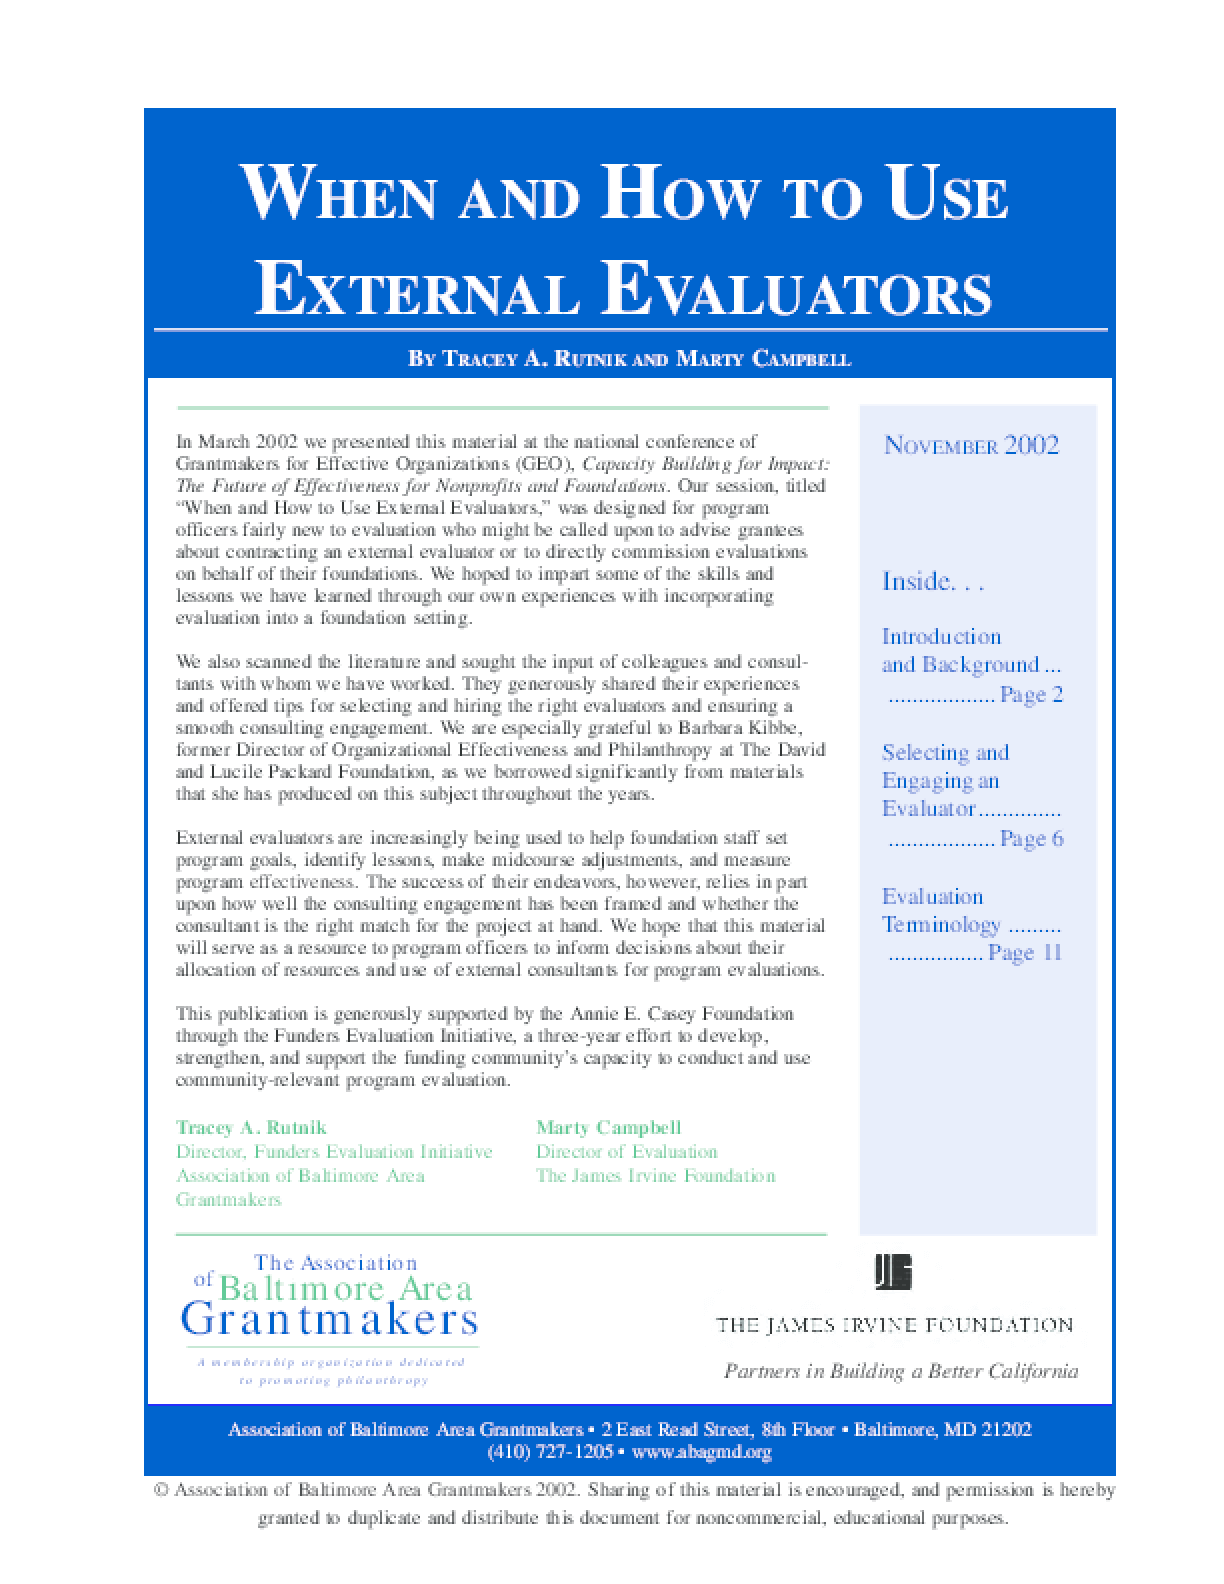 When and How to Use External Evaluators